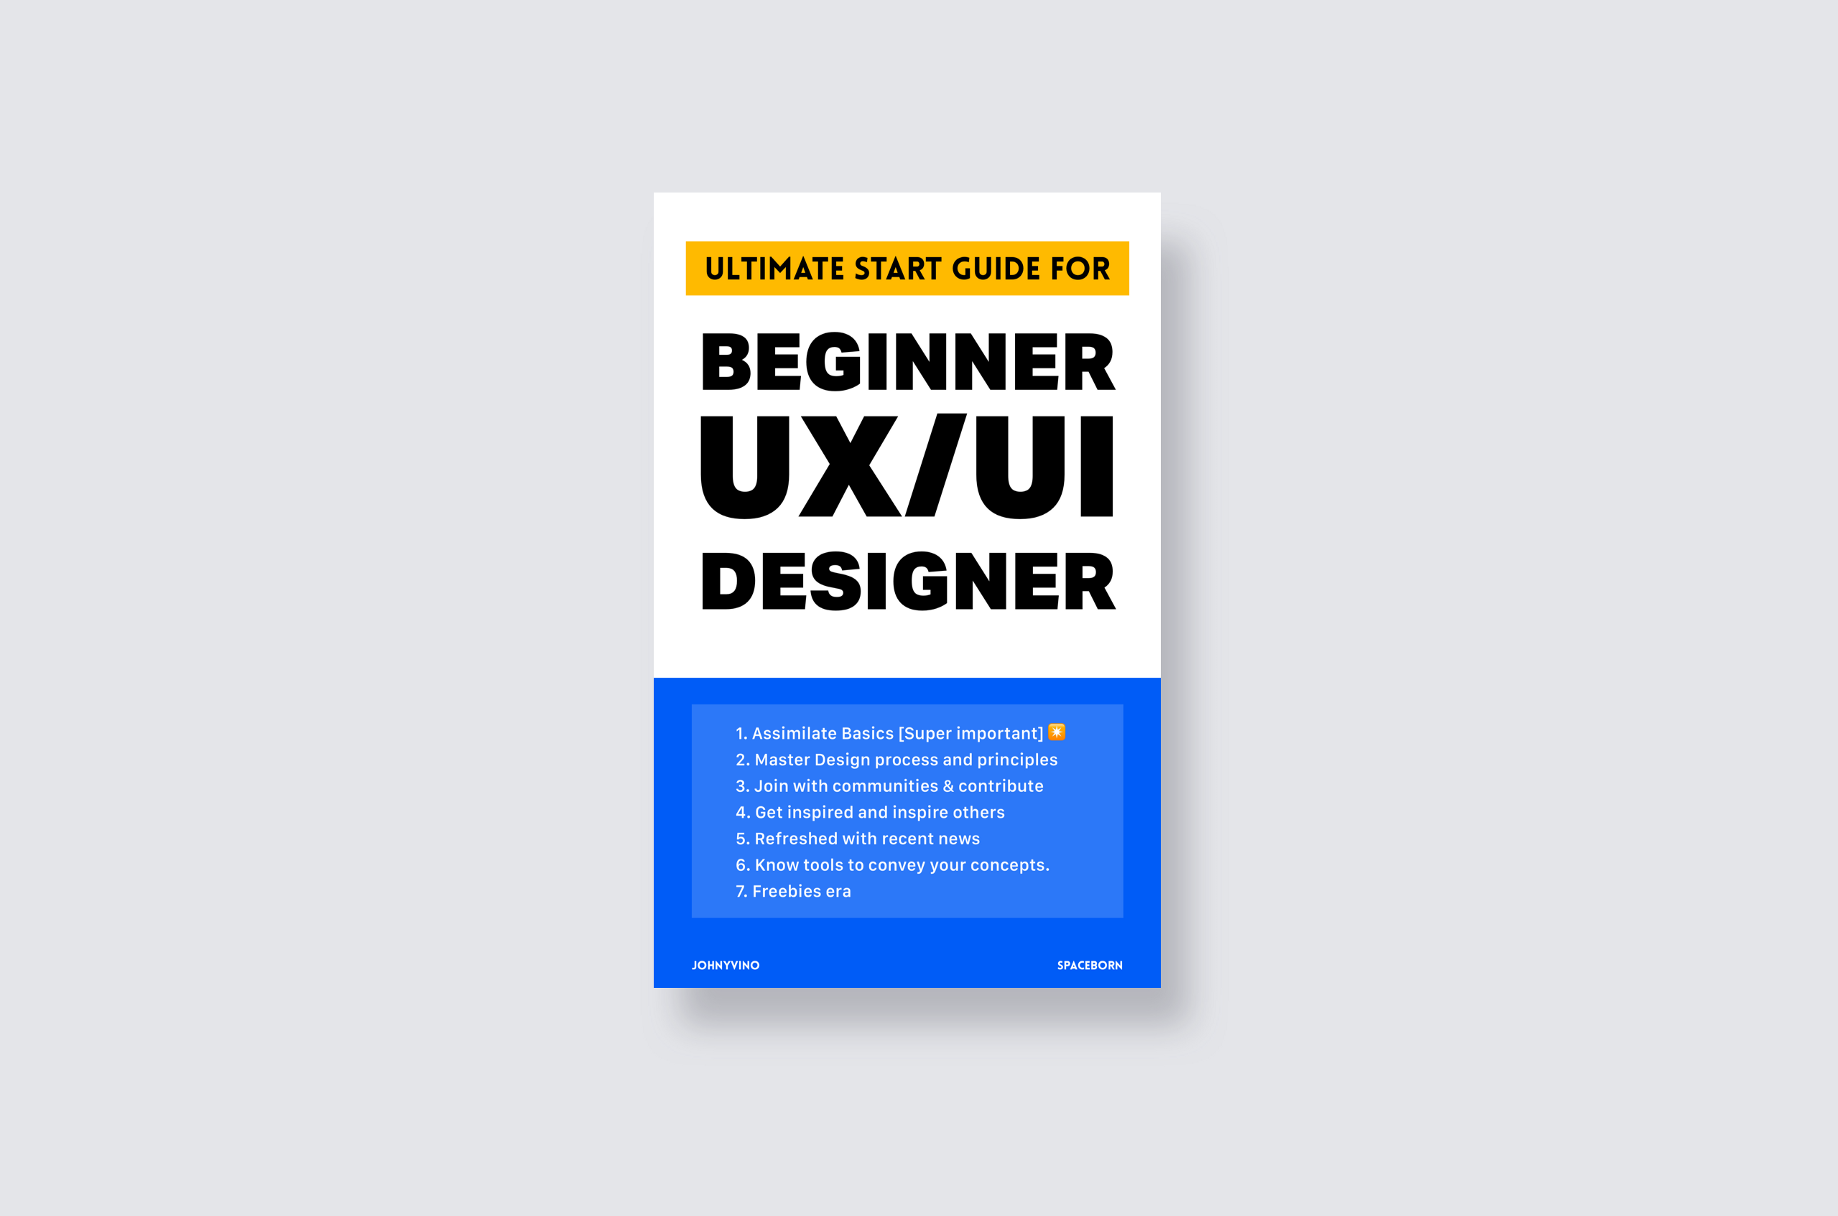 Ultimate Start guide for beginner UX/UI designers in 2019